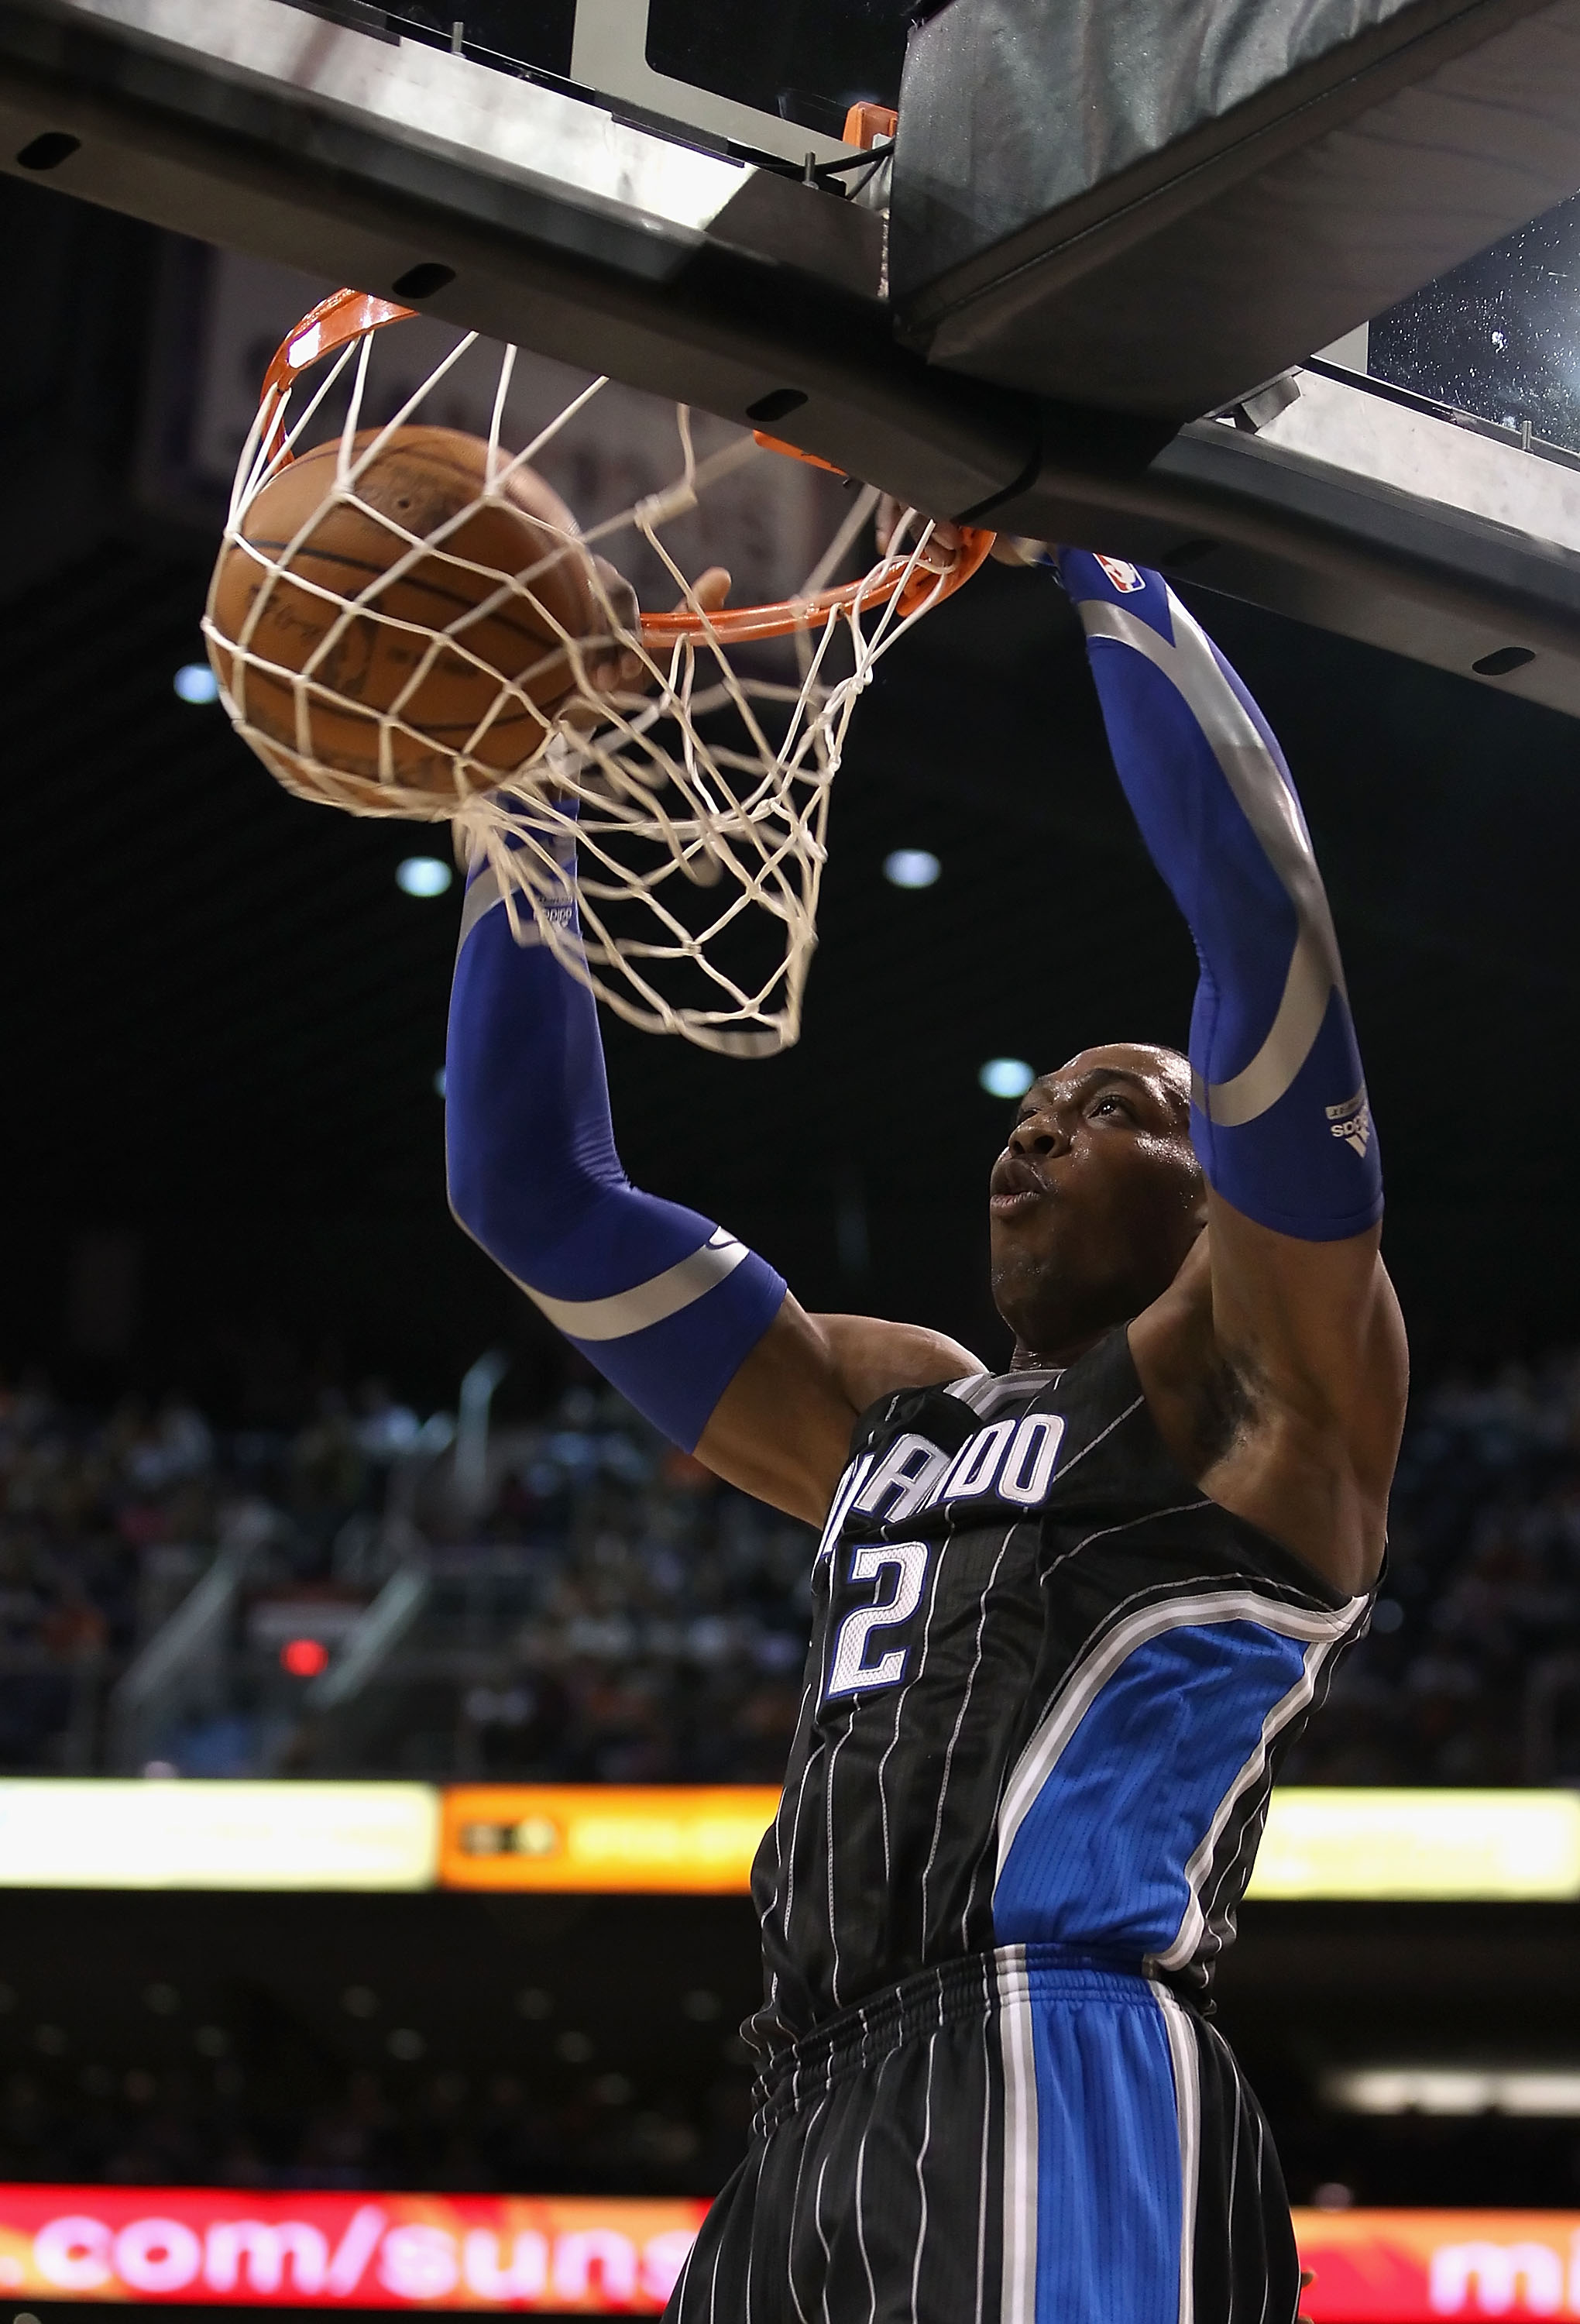 PHOENIX, AZ - MARCH 13:  Dwight Howard #12 of the Orlando Magic slam dunks the ball against the Phoenix Suns during the NBA game at US Airways Center on March 13, 2011 in Phoenix, Arizona.  NOTE TO USER: User expressly acknowledges and agrees that, by dow